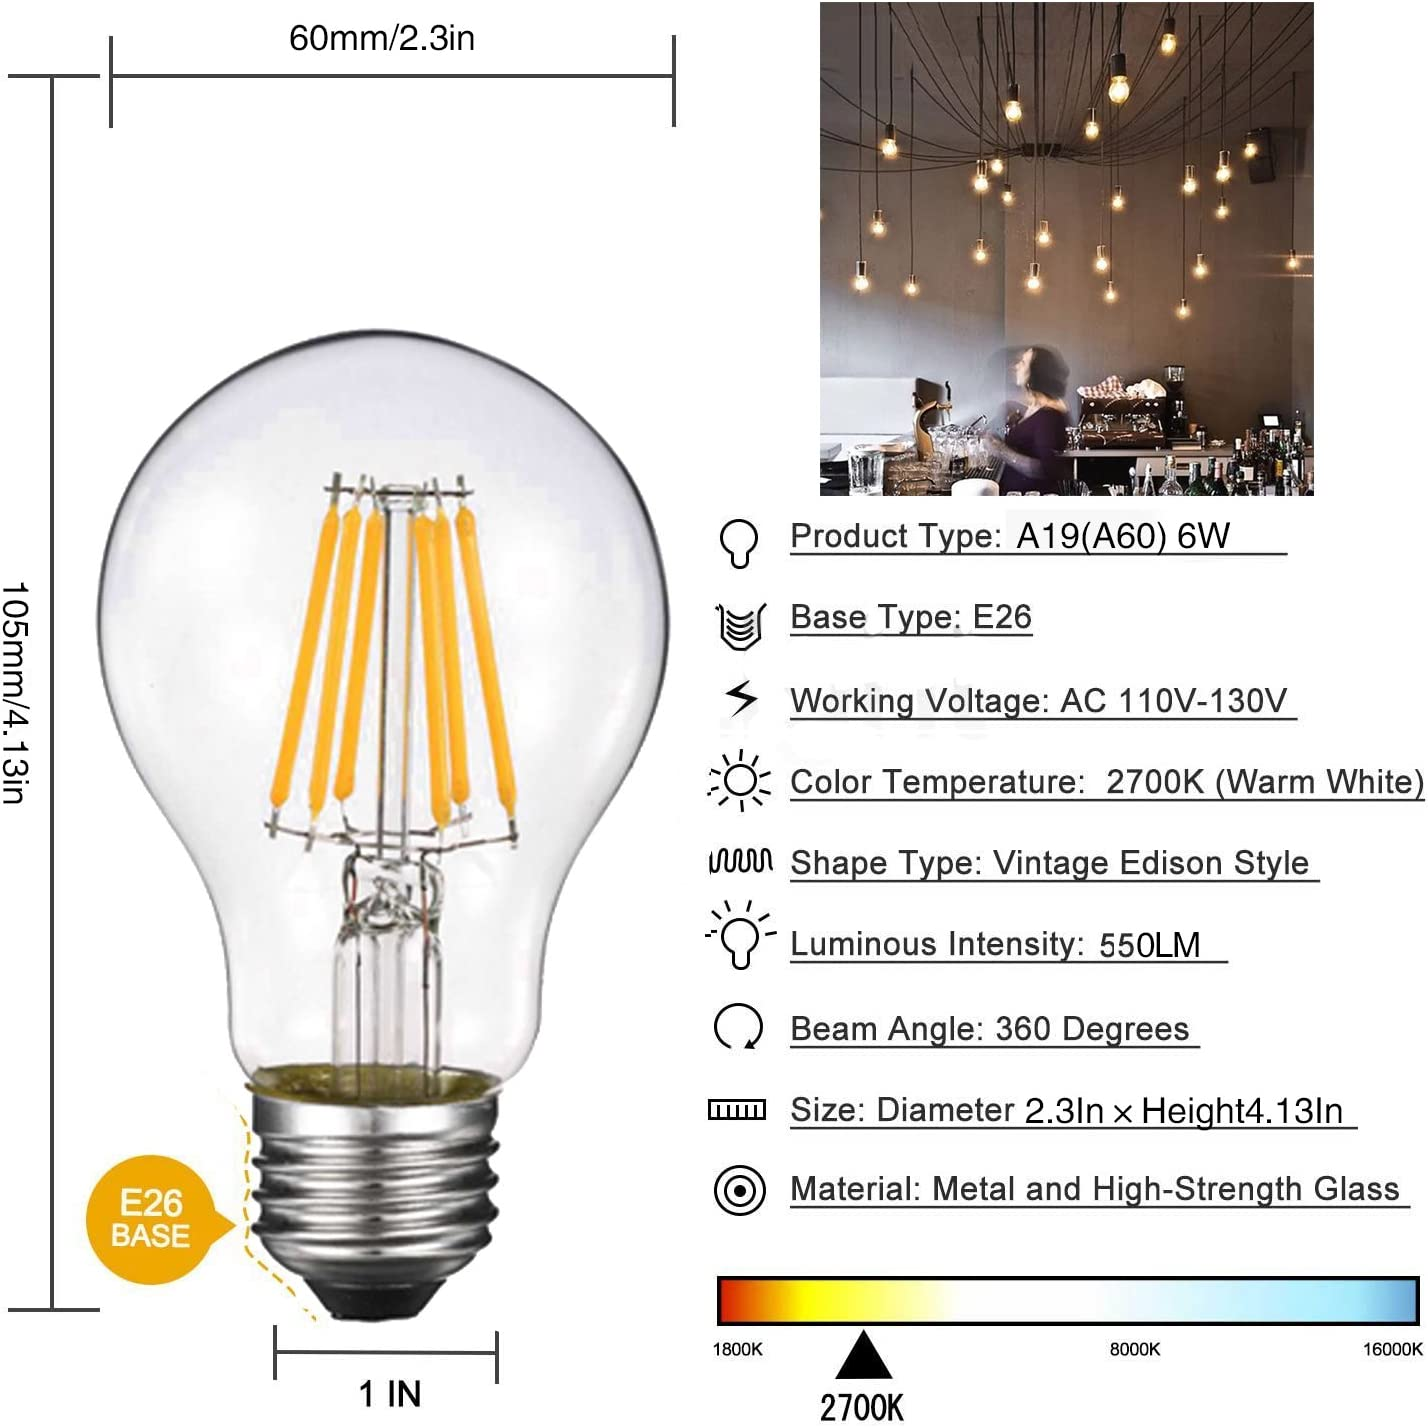 40W Incandescent Equivalent 4W Vintage Filament Light Bulb Dimmable Led Edison Bulb A19 E26 Clear Glass Cover Soft Warm White 2700k Pack of 6 360 Lumens